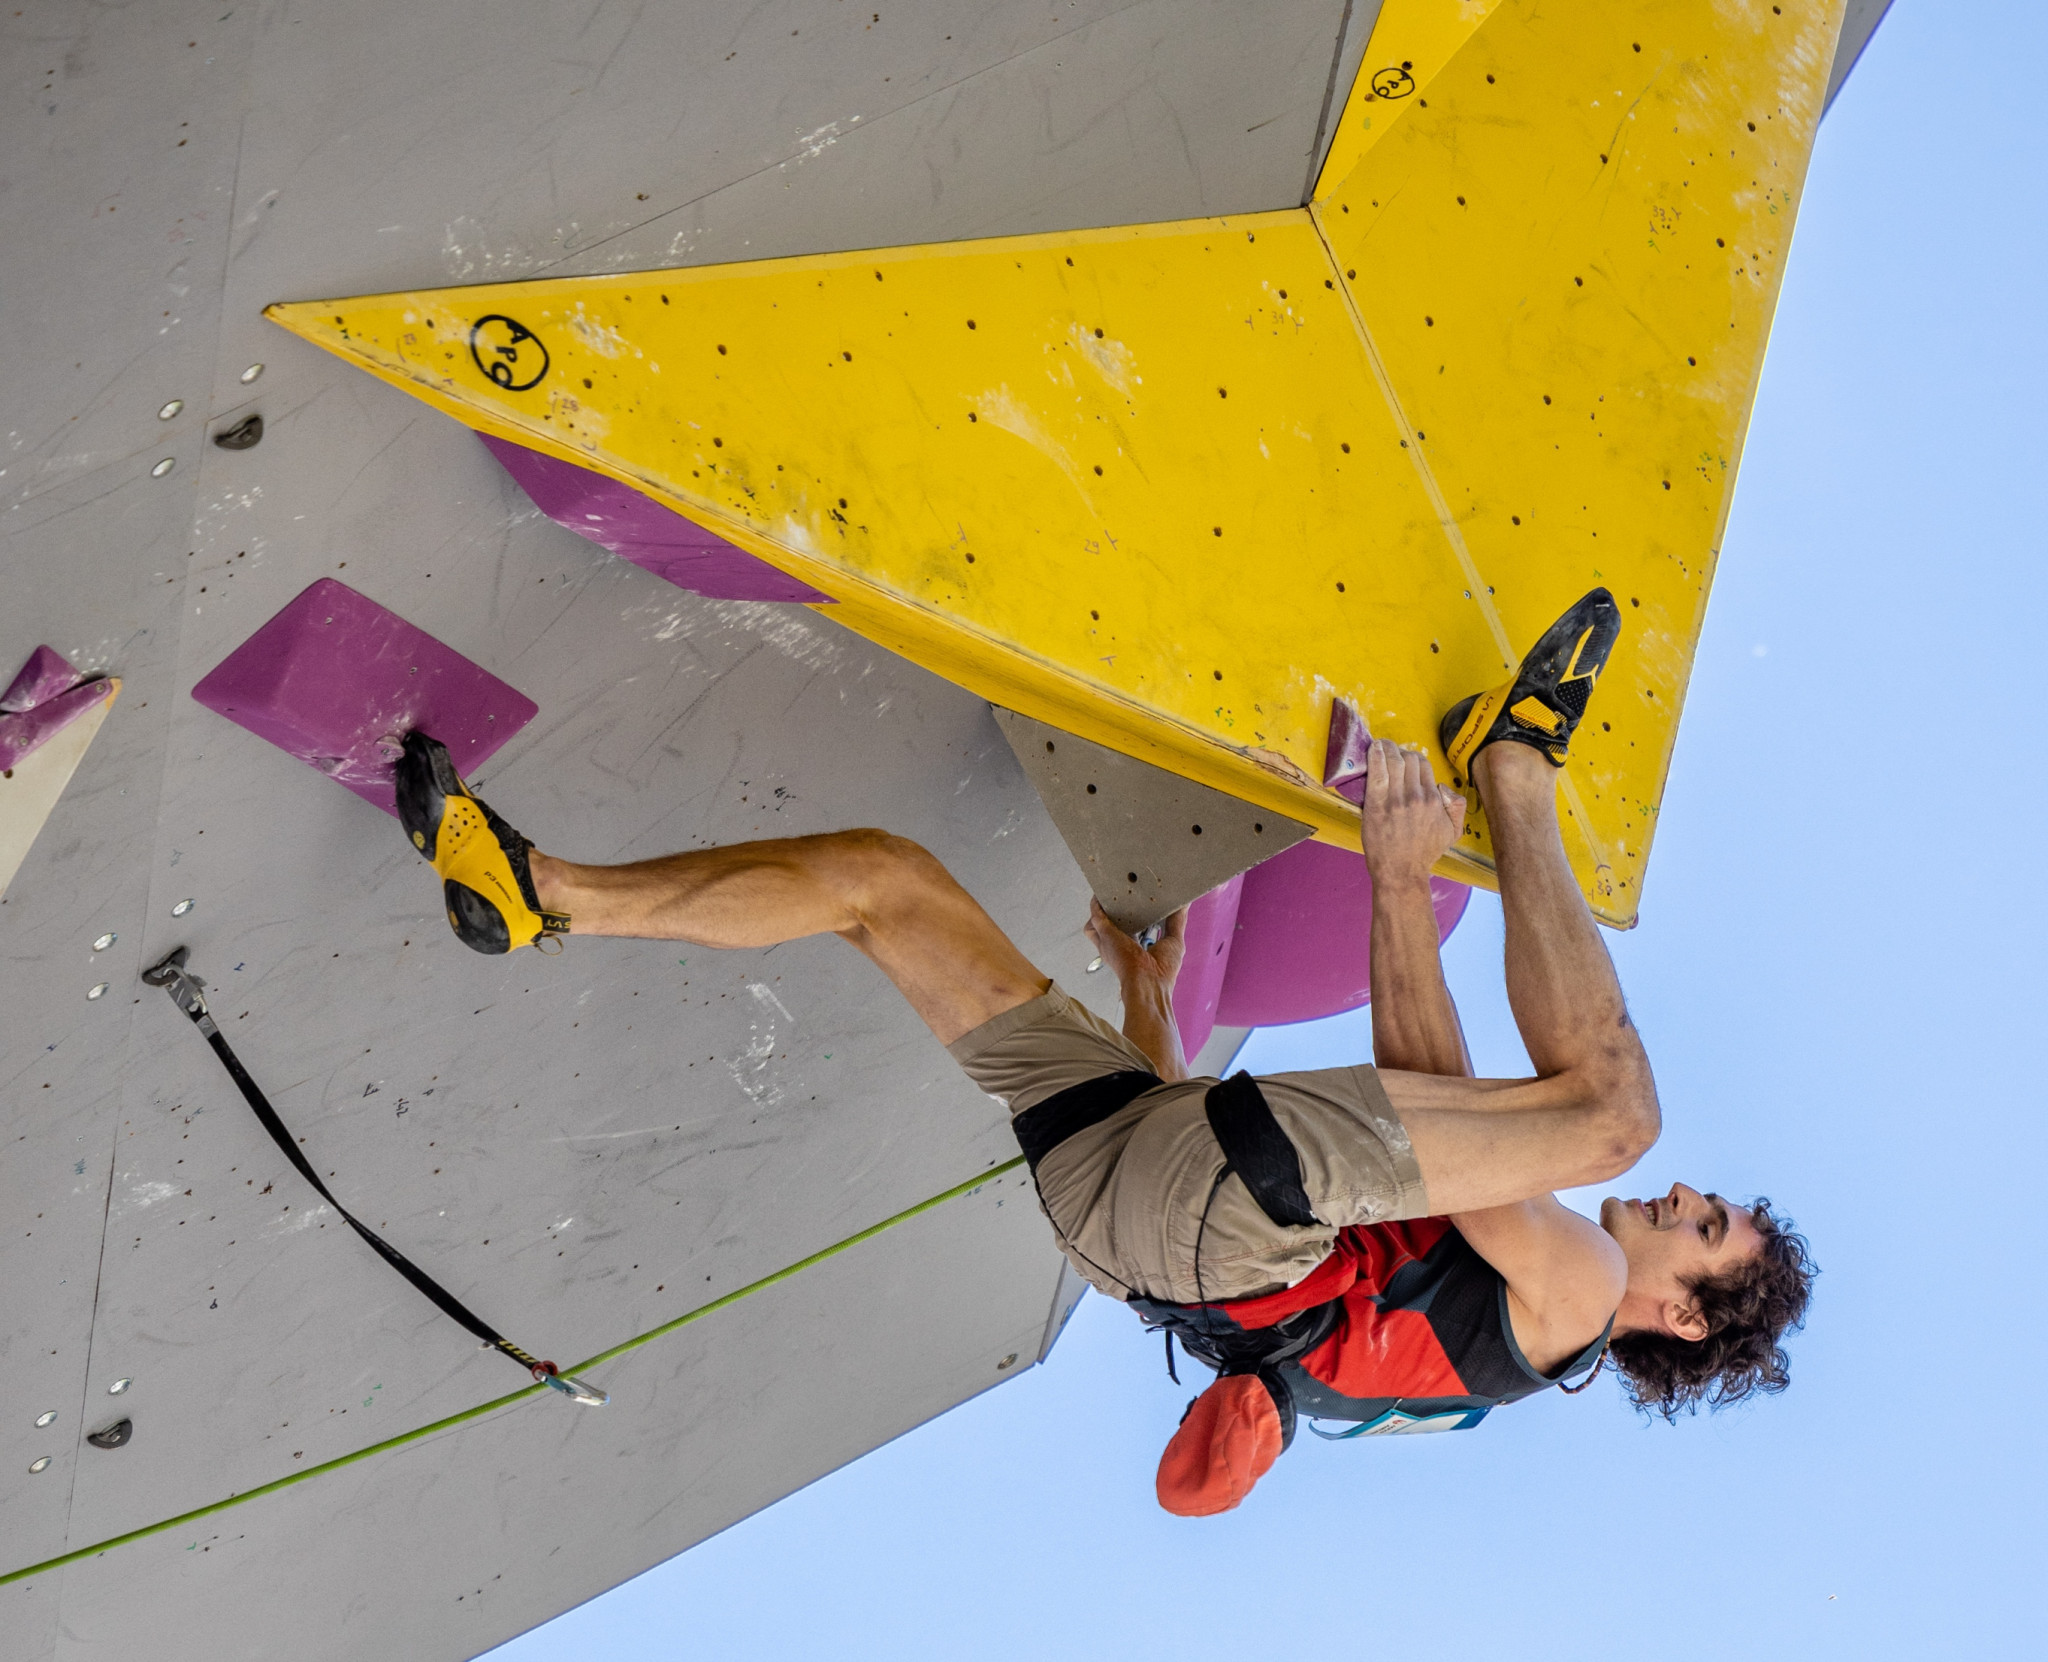 The Czech Republic's Adam Ondra claimed his 23rd gold medal in the IFSC World Cup with victory in Briançon ©IFSC